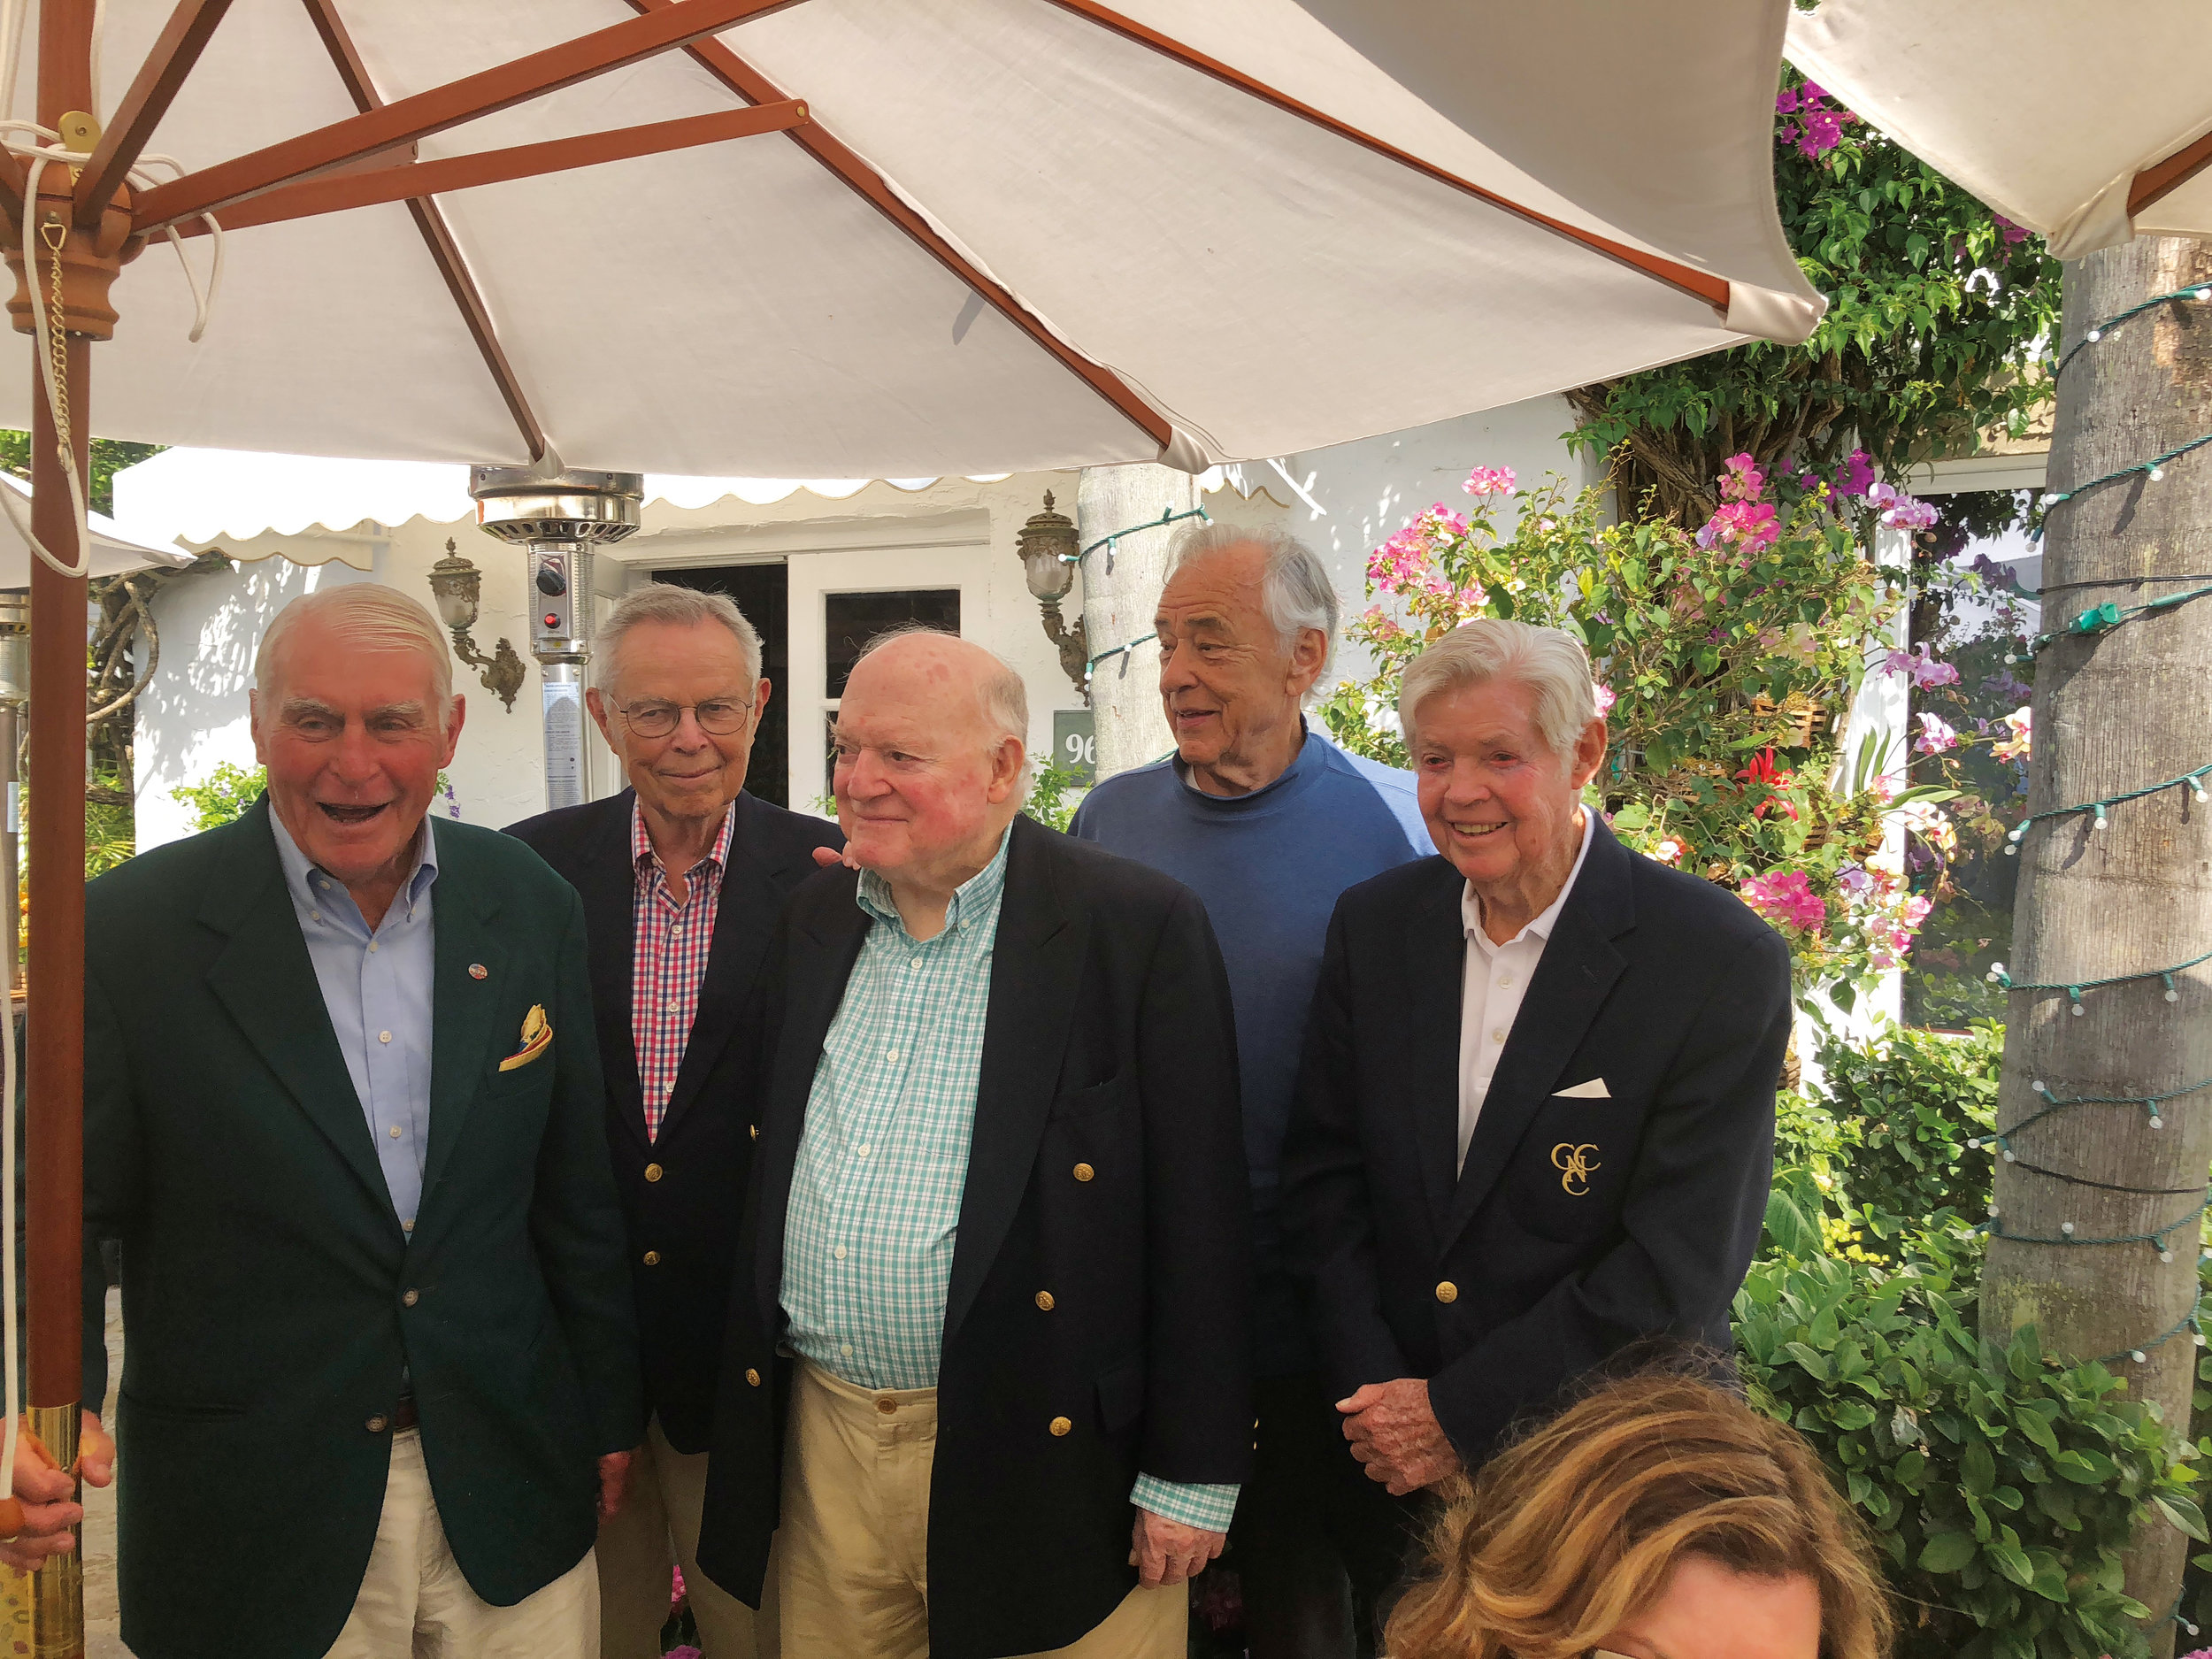 Formmates from 1948 (l. to r.) Bill Timpson, Burt Closson, Sandy McLanahan, Pete Coley, and Fuzzy Neville and a handful of their wives gathered for lunch in Palm Beach, Fla., in early March.